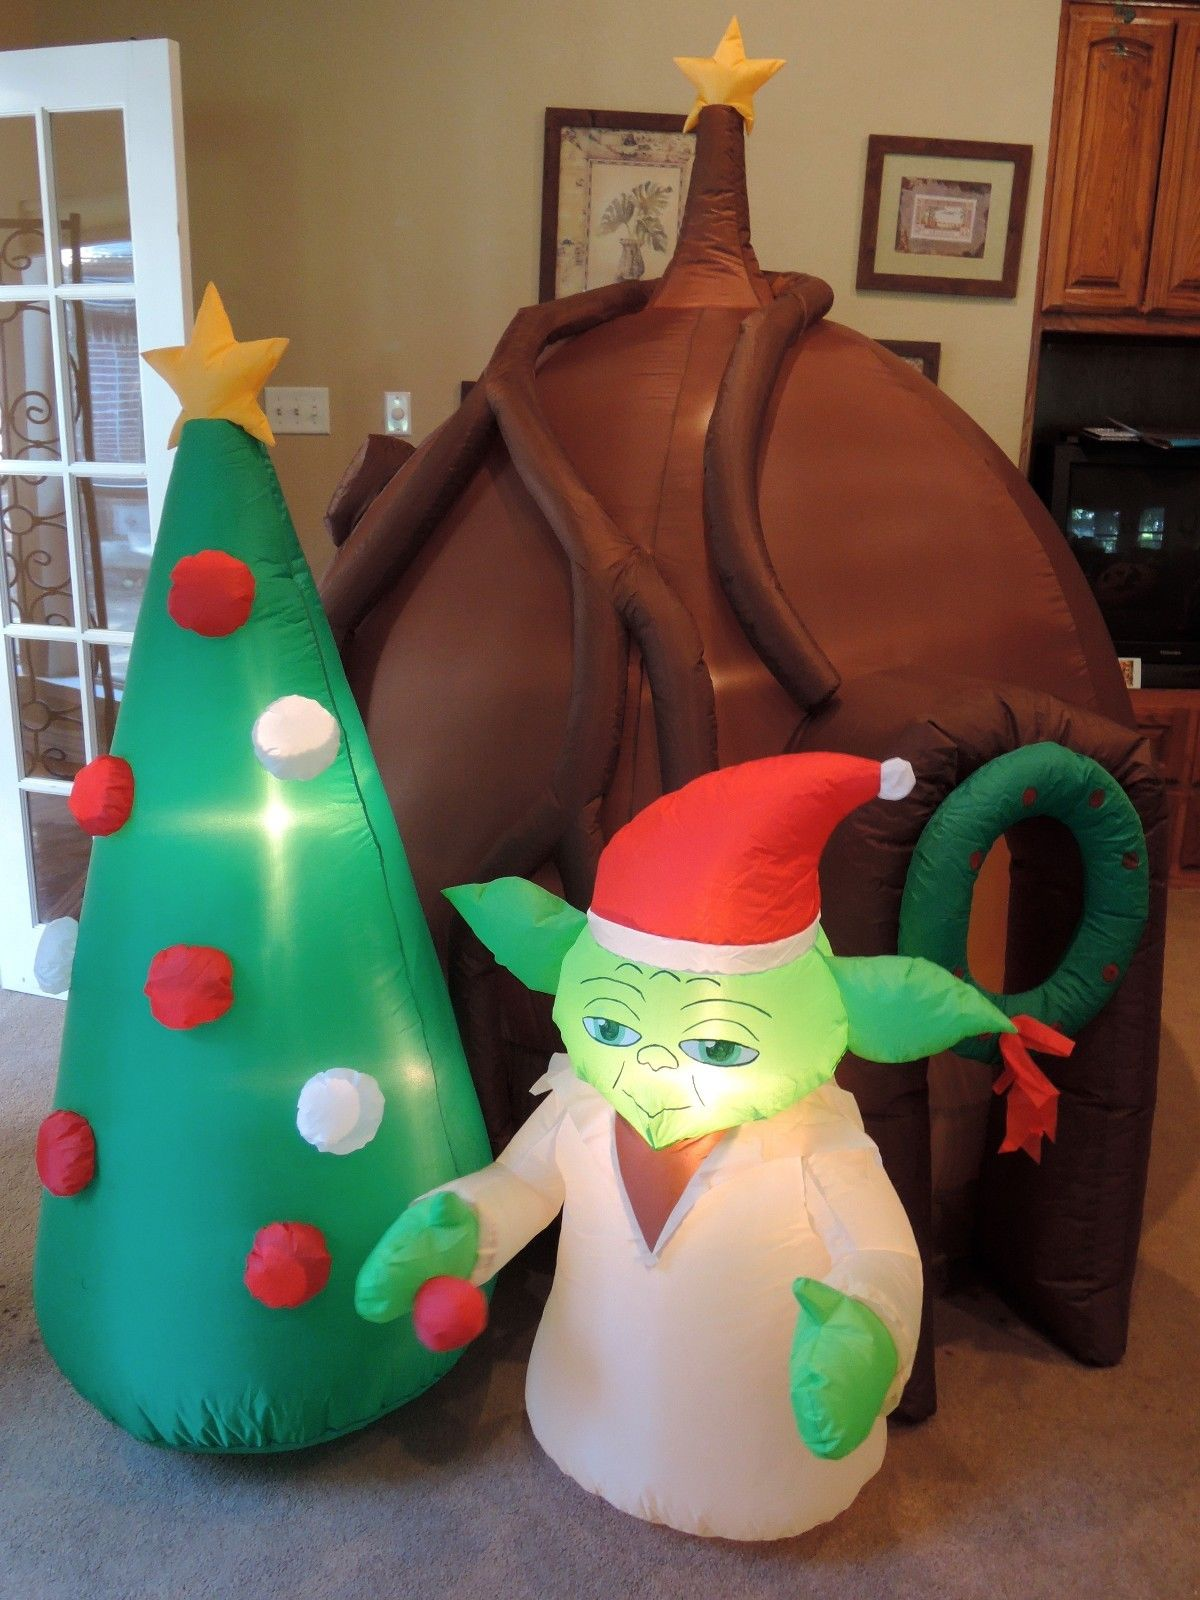 gemmy inflatable star wars christmas scenejpg - Star Wars Blow Up Christmas Decorations